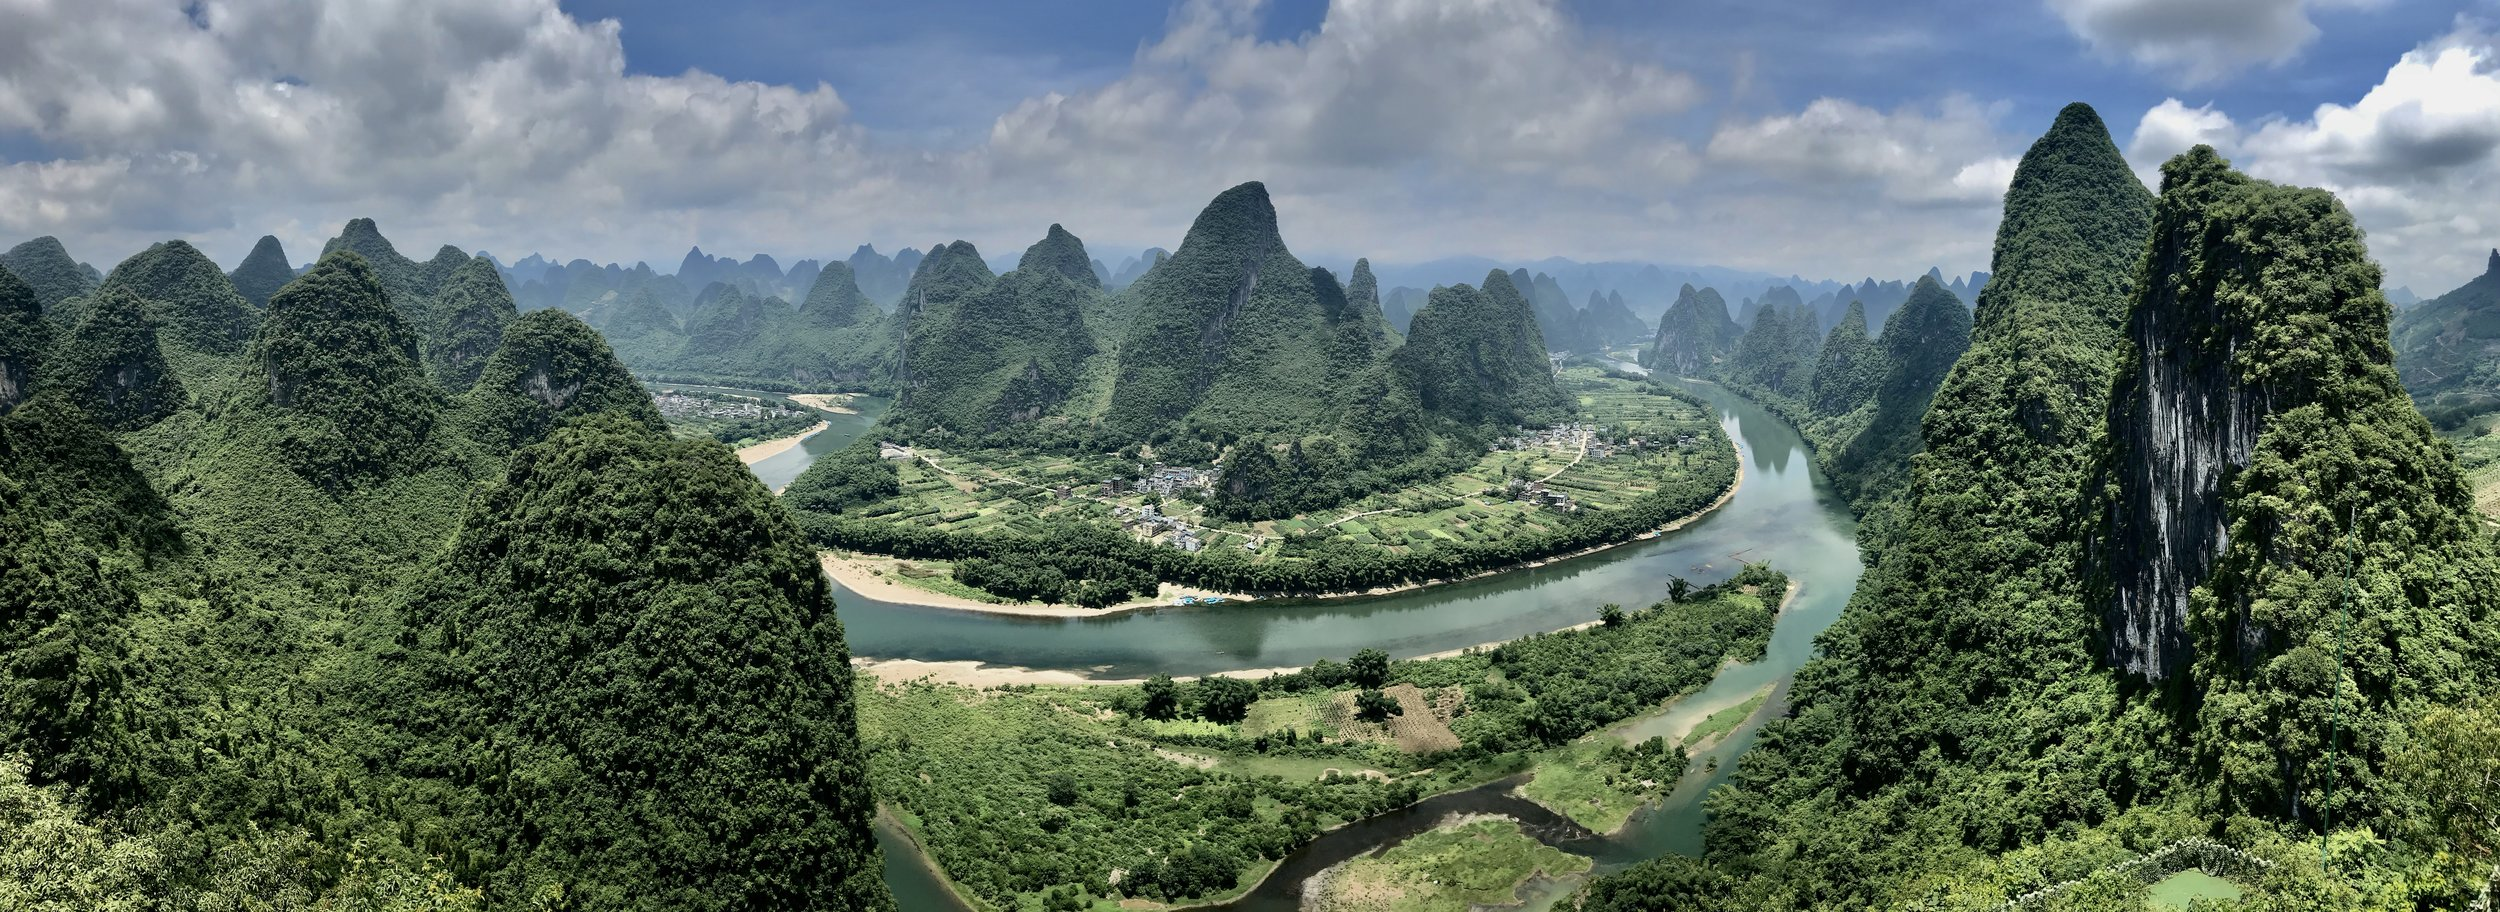 View from Xianggong Mountain, Xingping, Guangxi Province, China